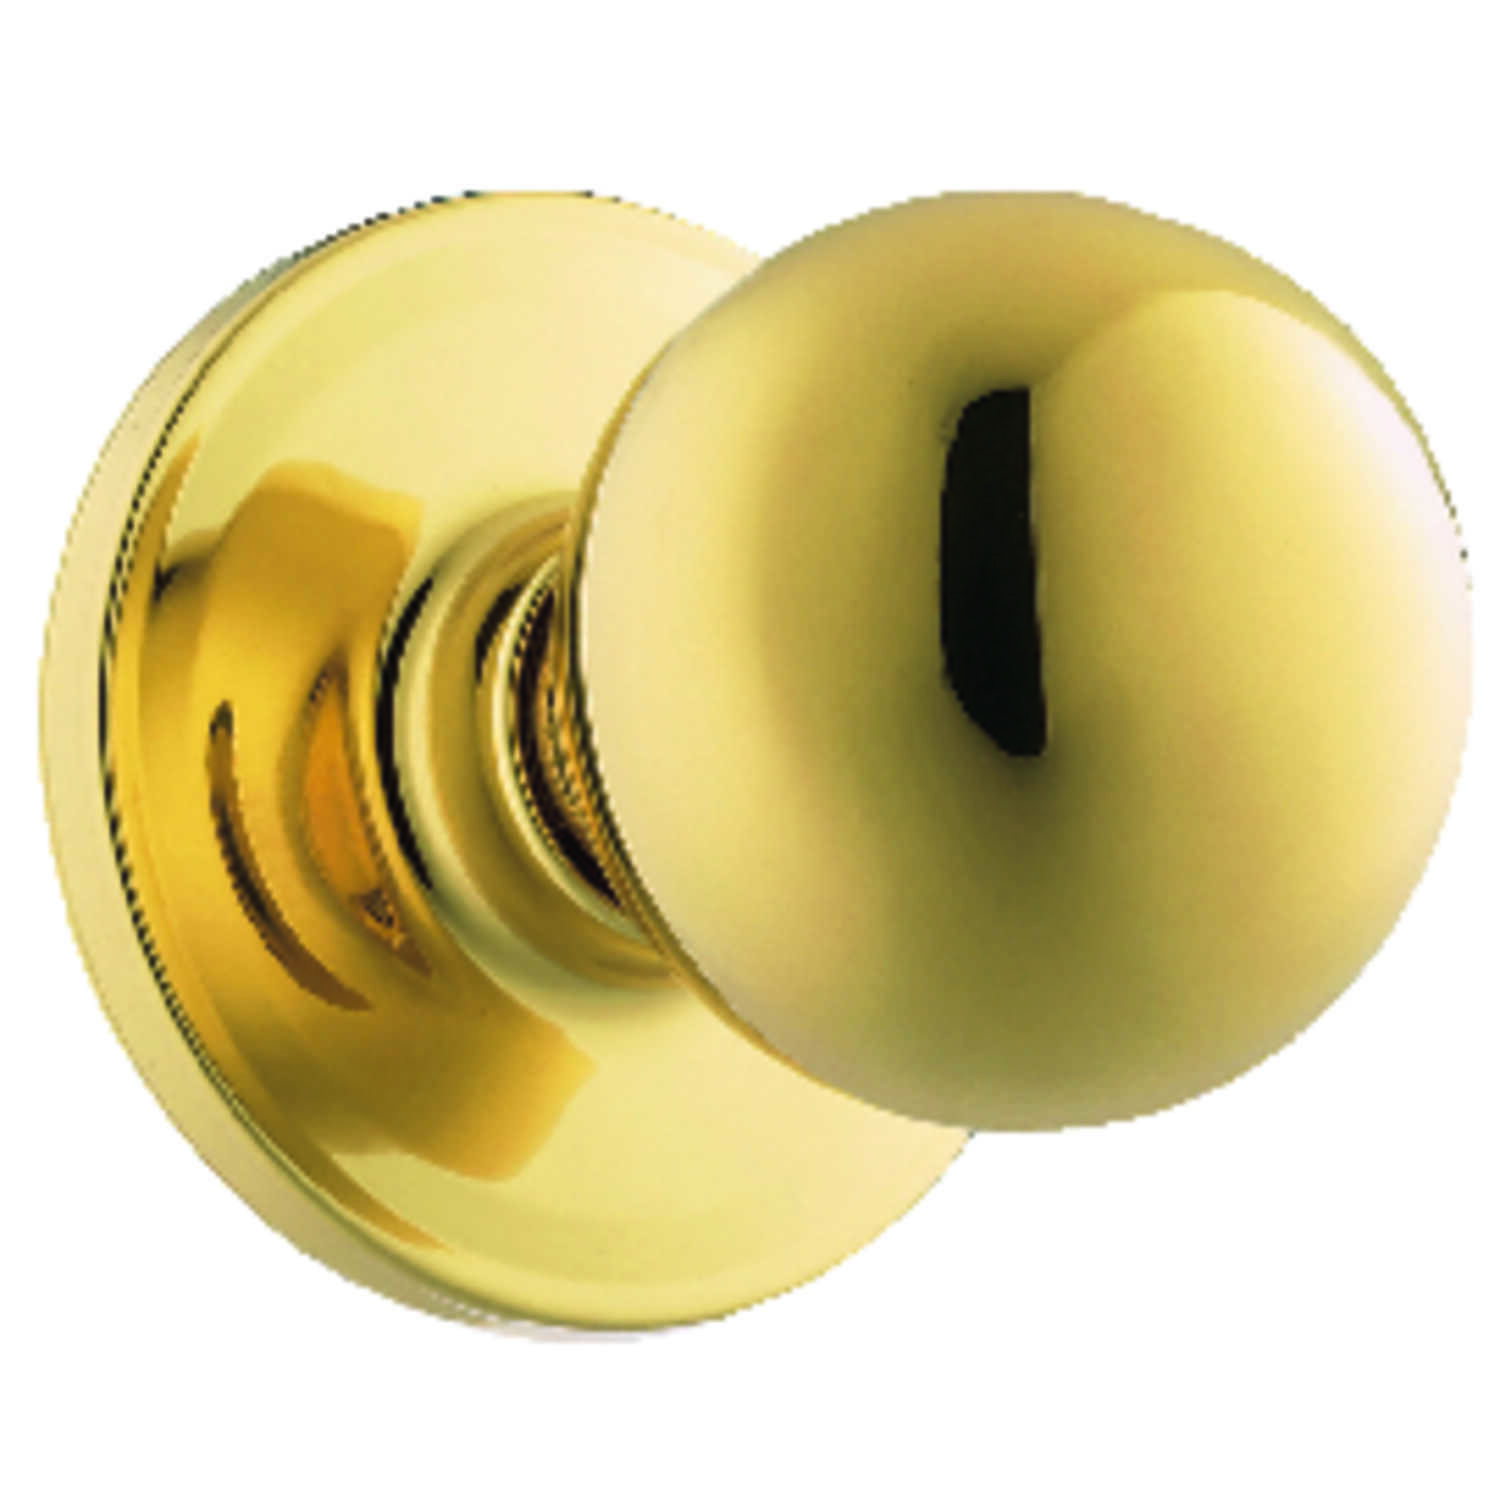 Weiser  Yukon  Polished Brass  Steel  Passage Lockset  ANSI/BHMA Grade 3  1-3/4 in.